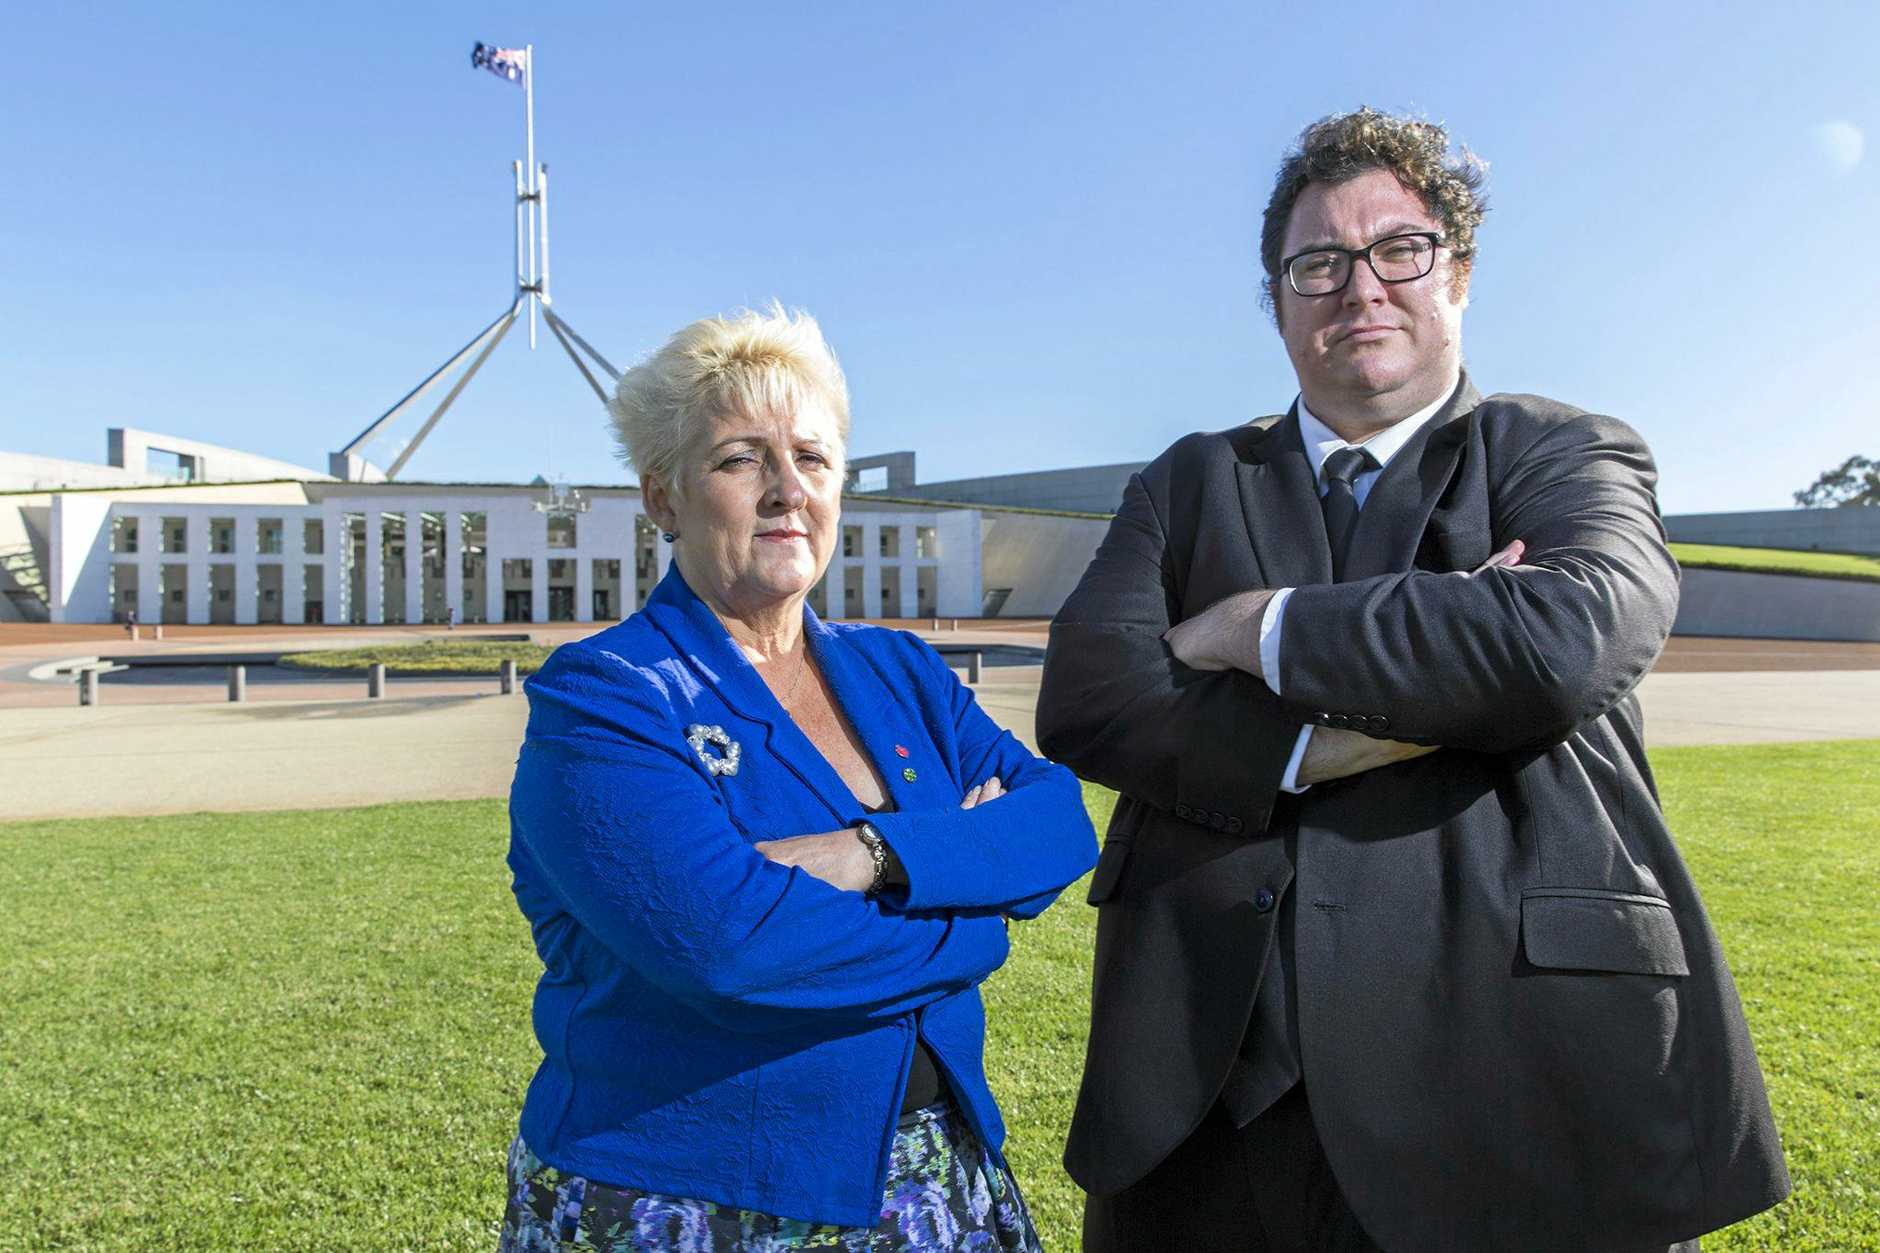 SPENDING: Capricornia MP Michelle Landry and Dawson MP George Christensen's office costs were each more than $100,000 in the first six months of this year.